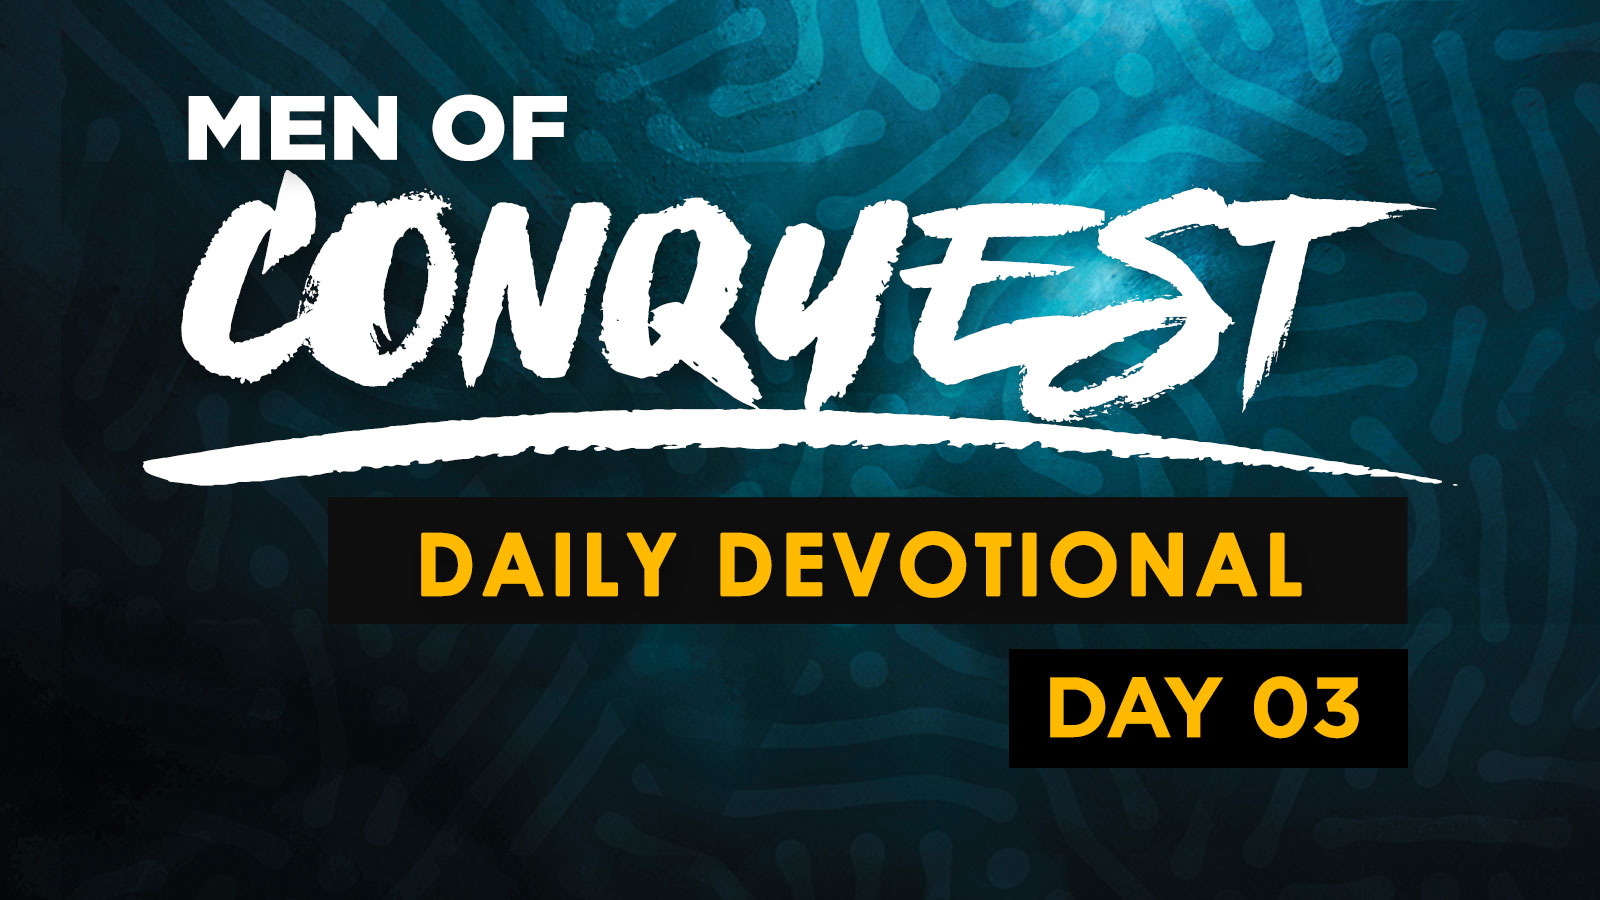 DEVOTIONAL-GRAPHIC-1600x900_03